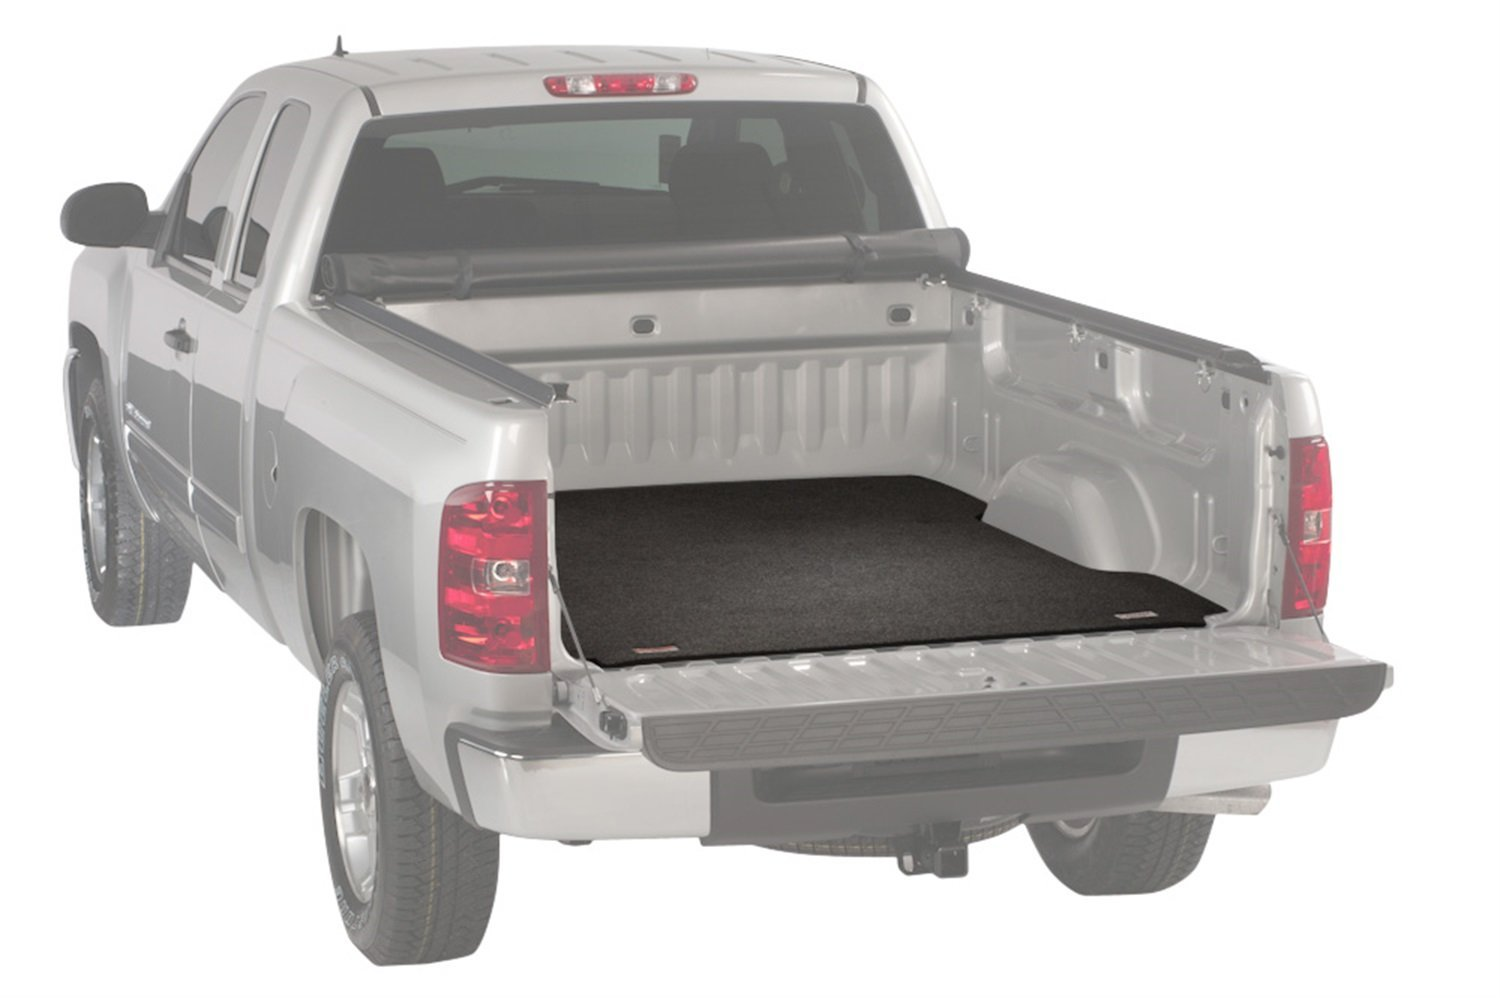 25040179 ACI/ AgriCover/ Access Cover Bed Mat Direct-Fit